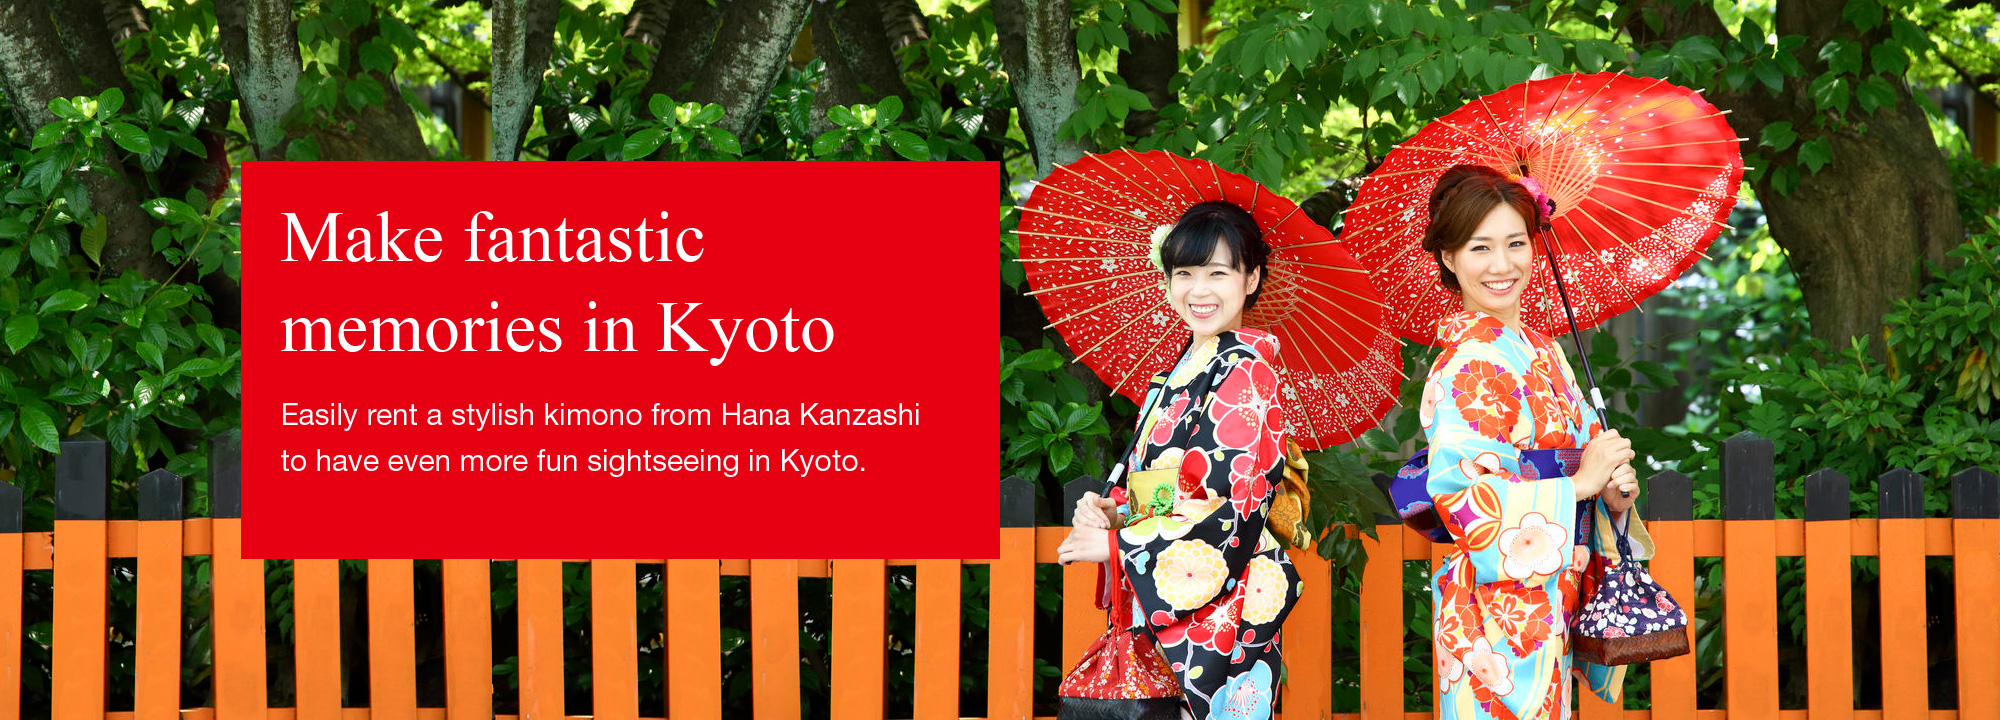 Make fantastic memories in Kyoto